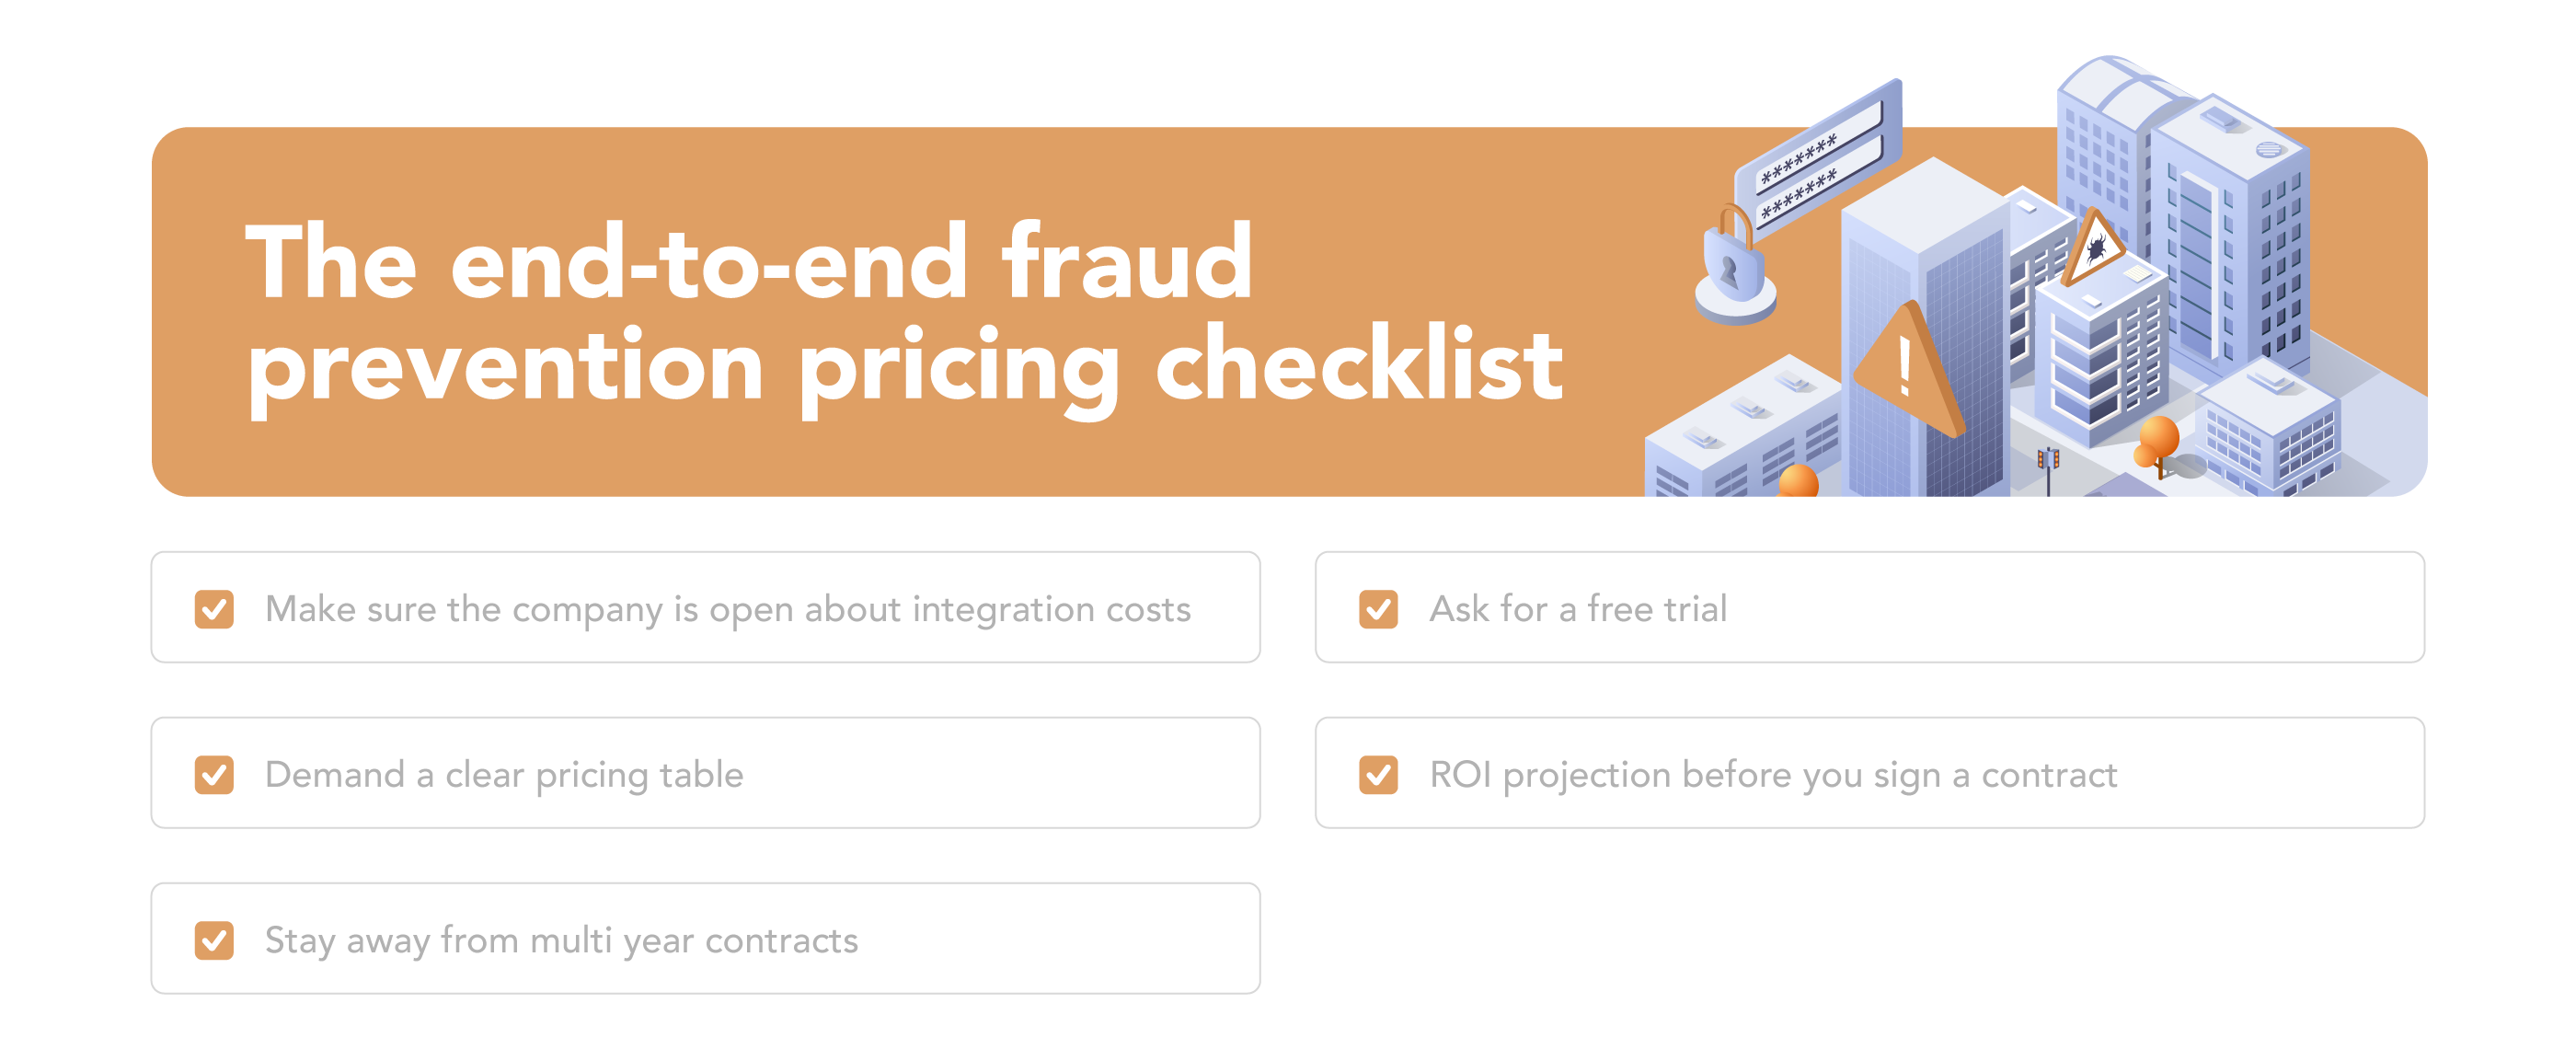 checklist for ensuring transparent enterprise fraud prevention pricing